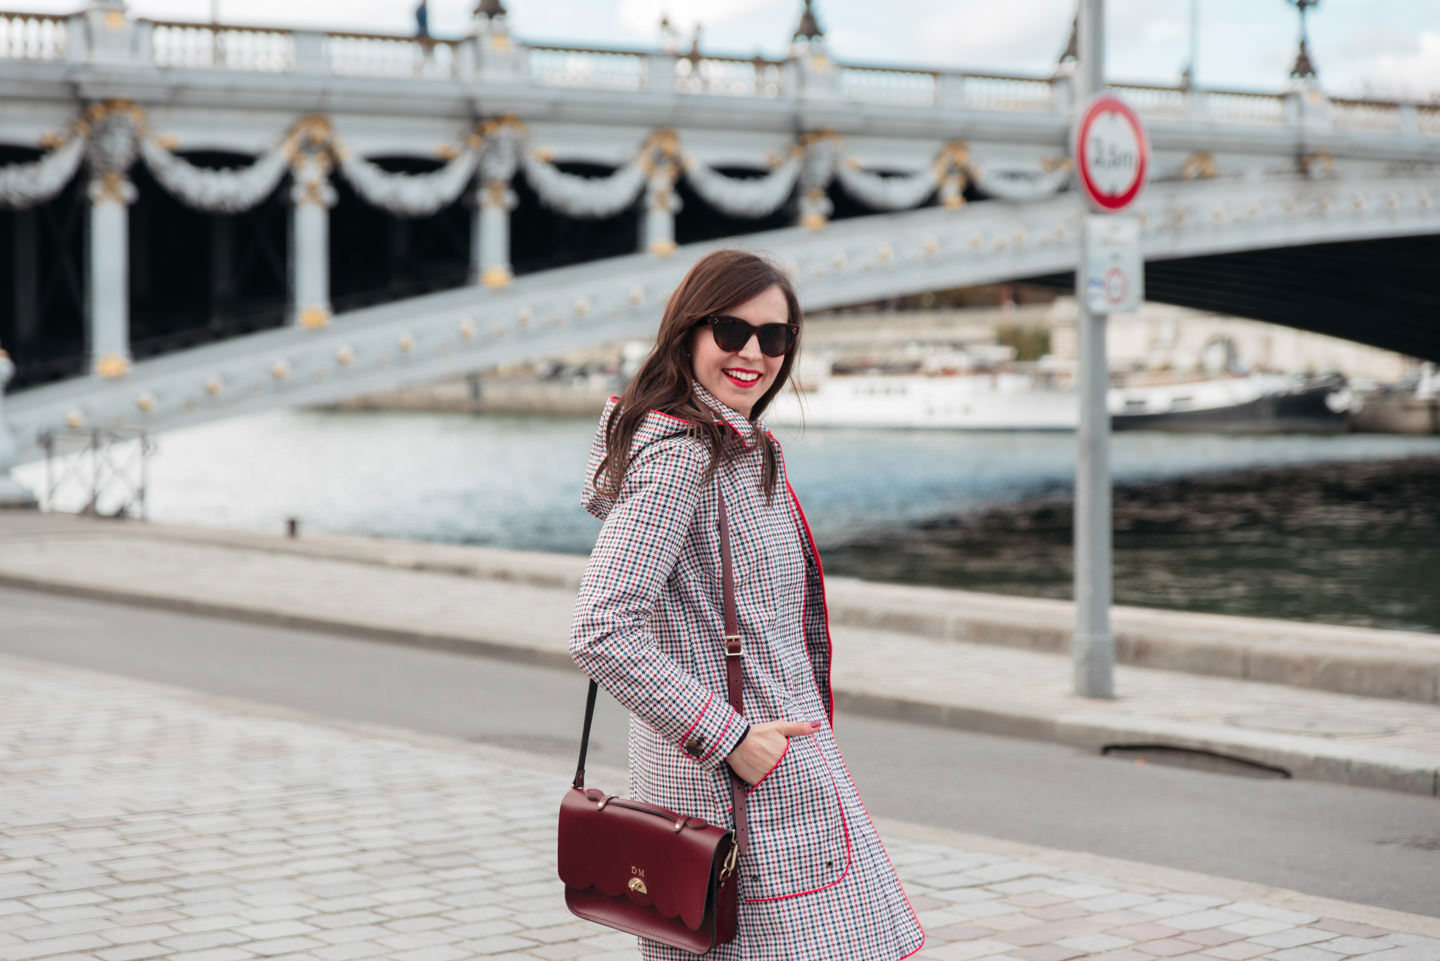 Concours 10 ans du blog boden mode and the city for Boden mode gutscheincode